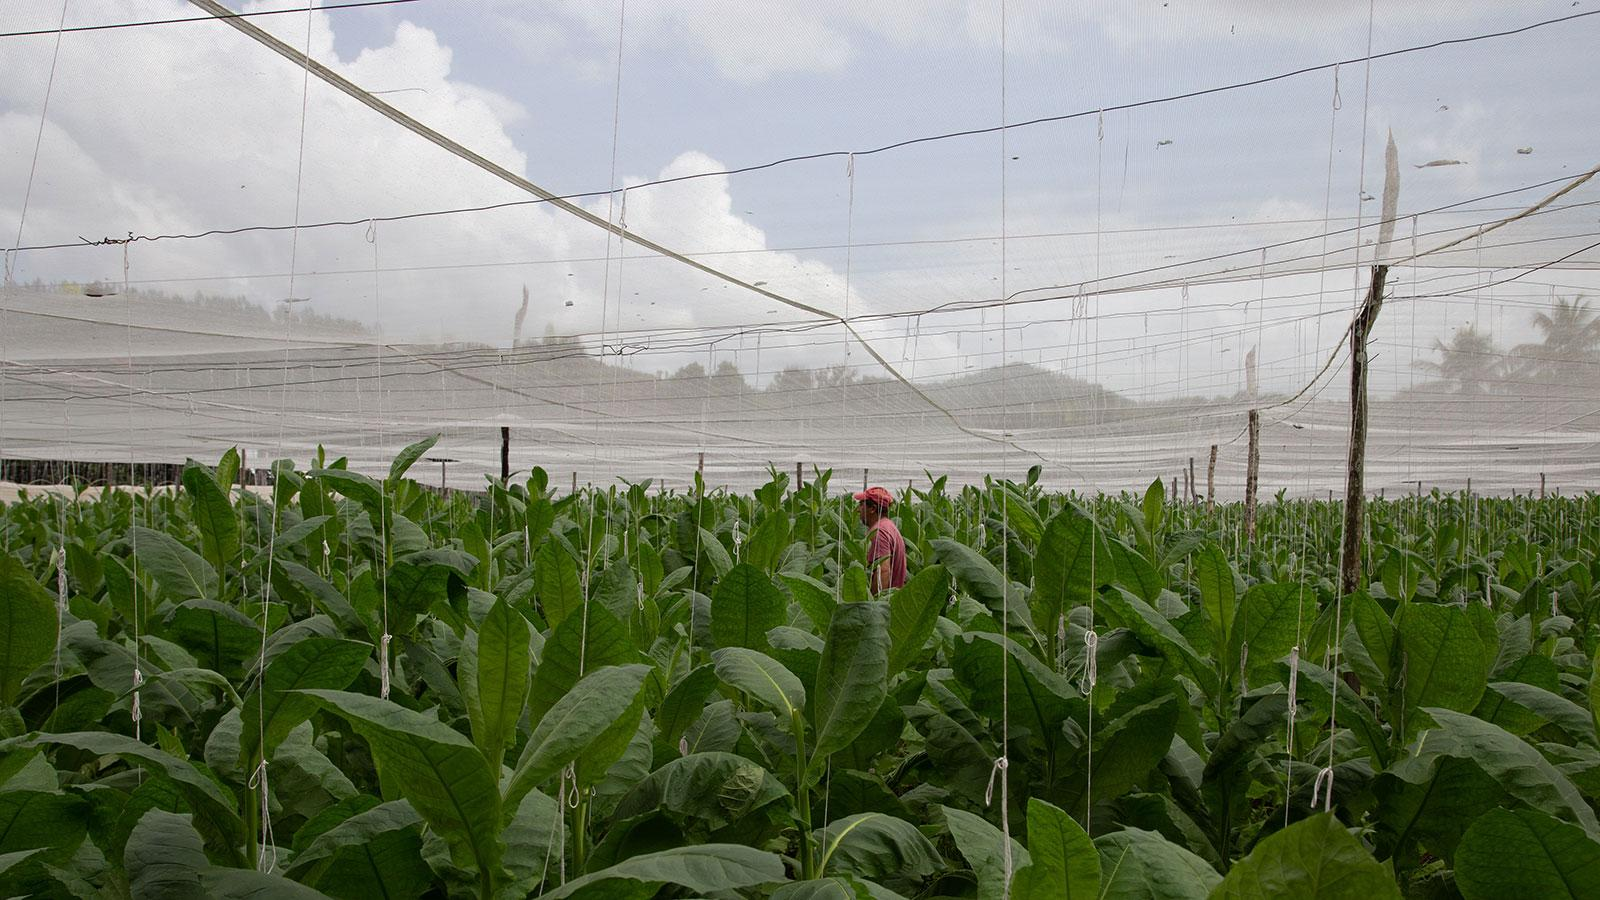 Lush tobacco as far as the eye can see despite the difficult, rainy weather. These plants on the San Luis finca, the largest of Fuente's plantations, have been growing for about 45 days.